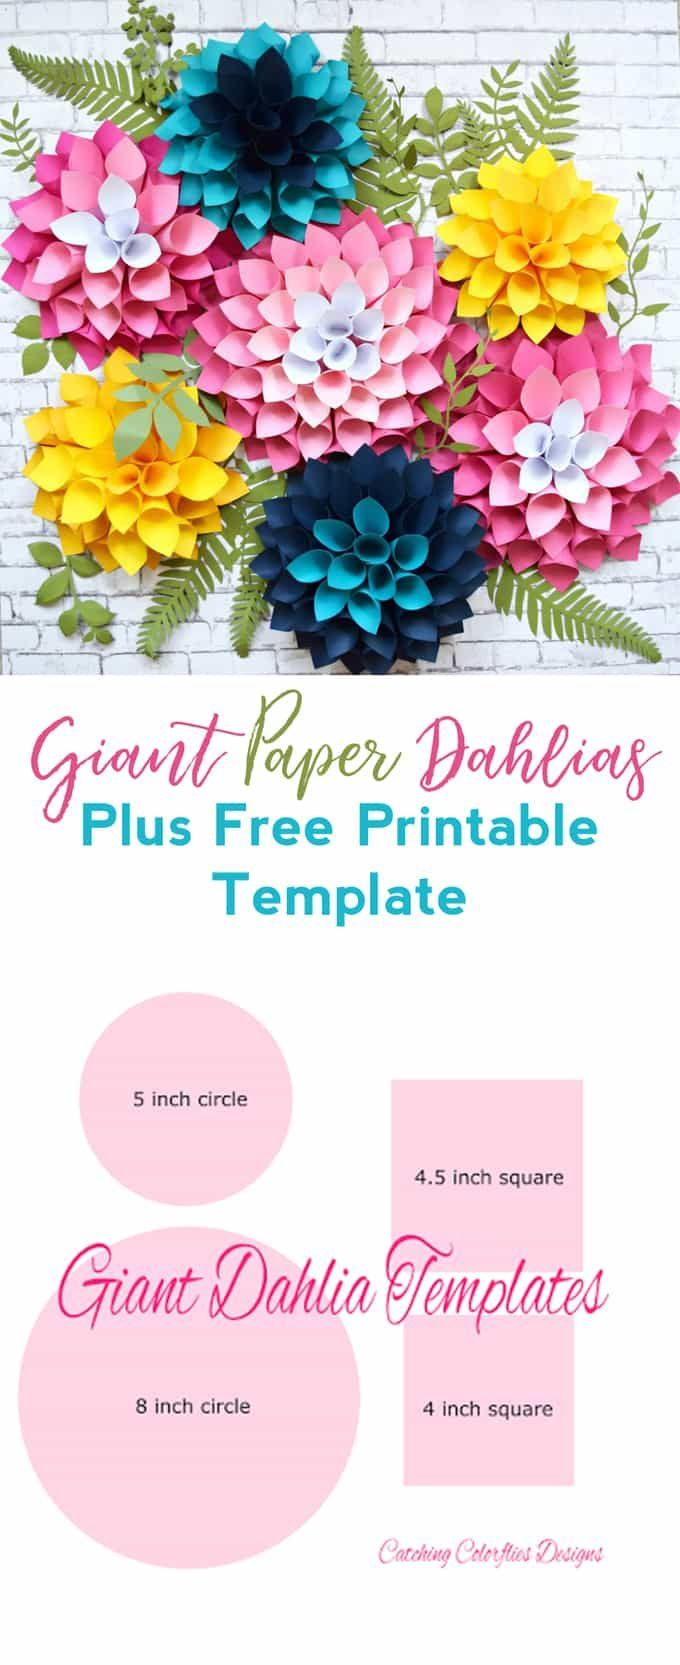 Step By Step Easy Giant Paper Dahlia Tutorial Pinterest Paper